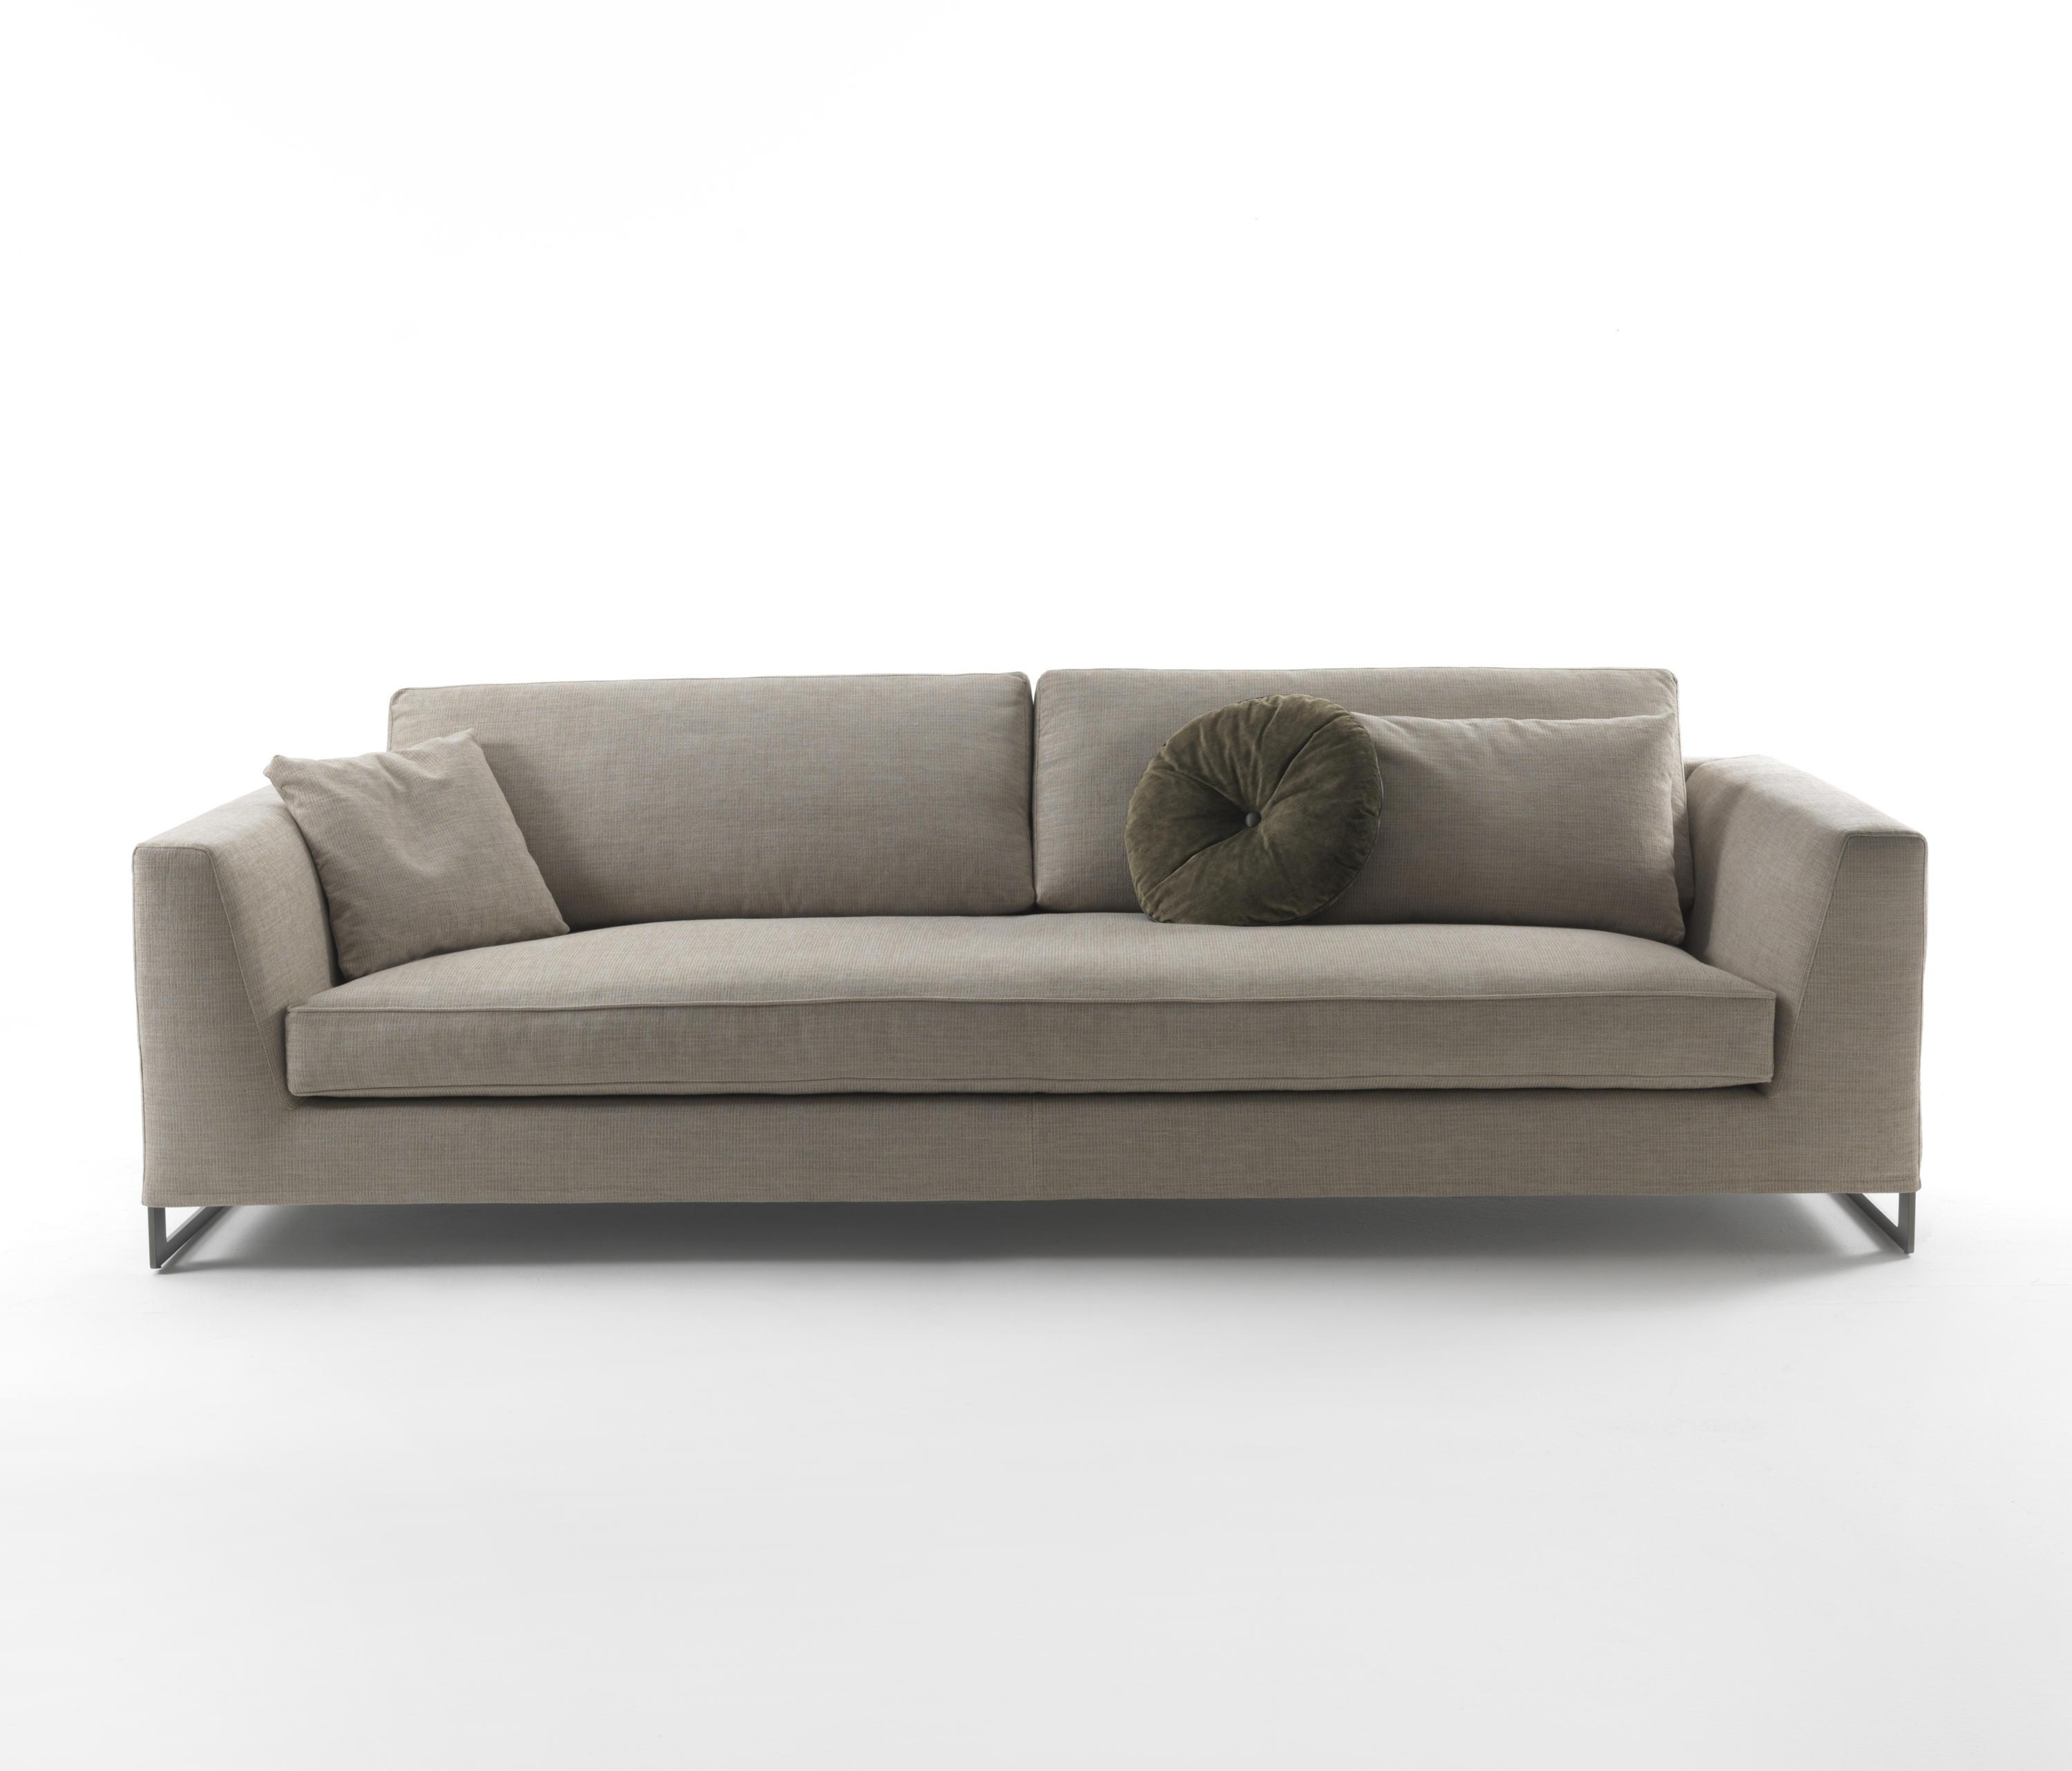 Free Sofas With Davis Sofas (View 13 of 20)